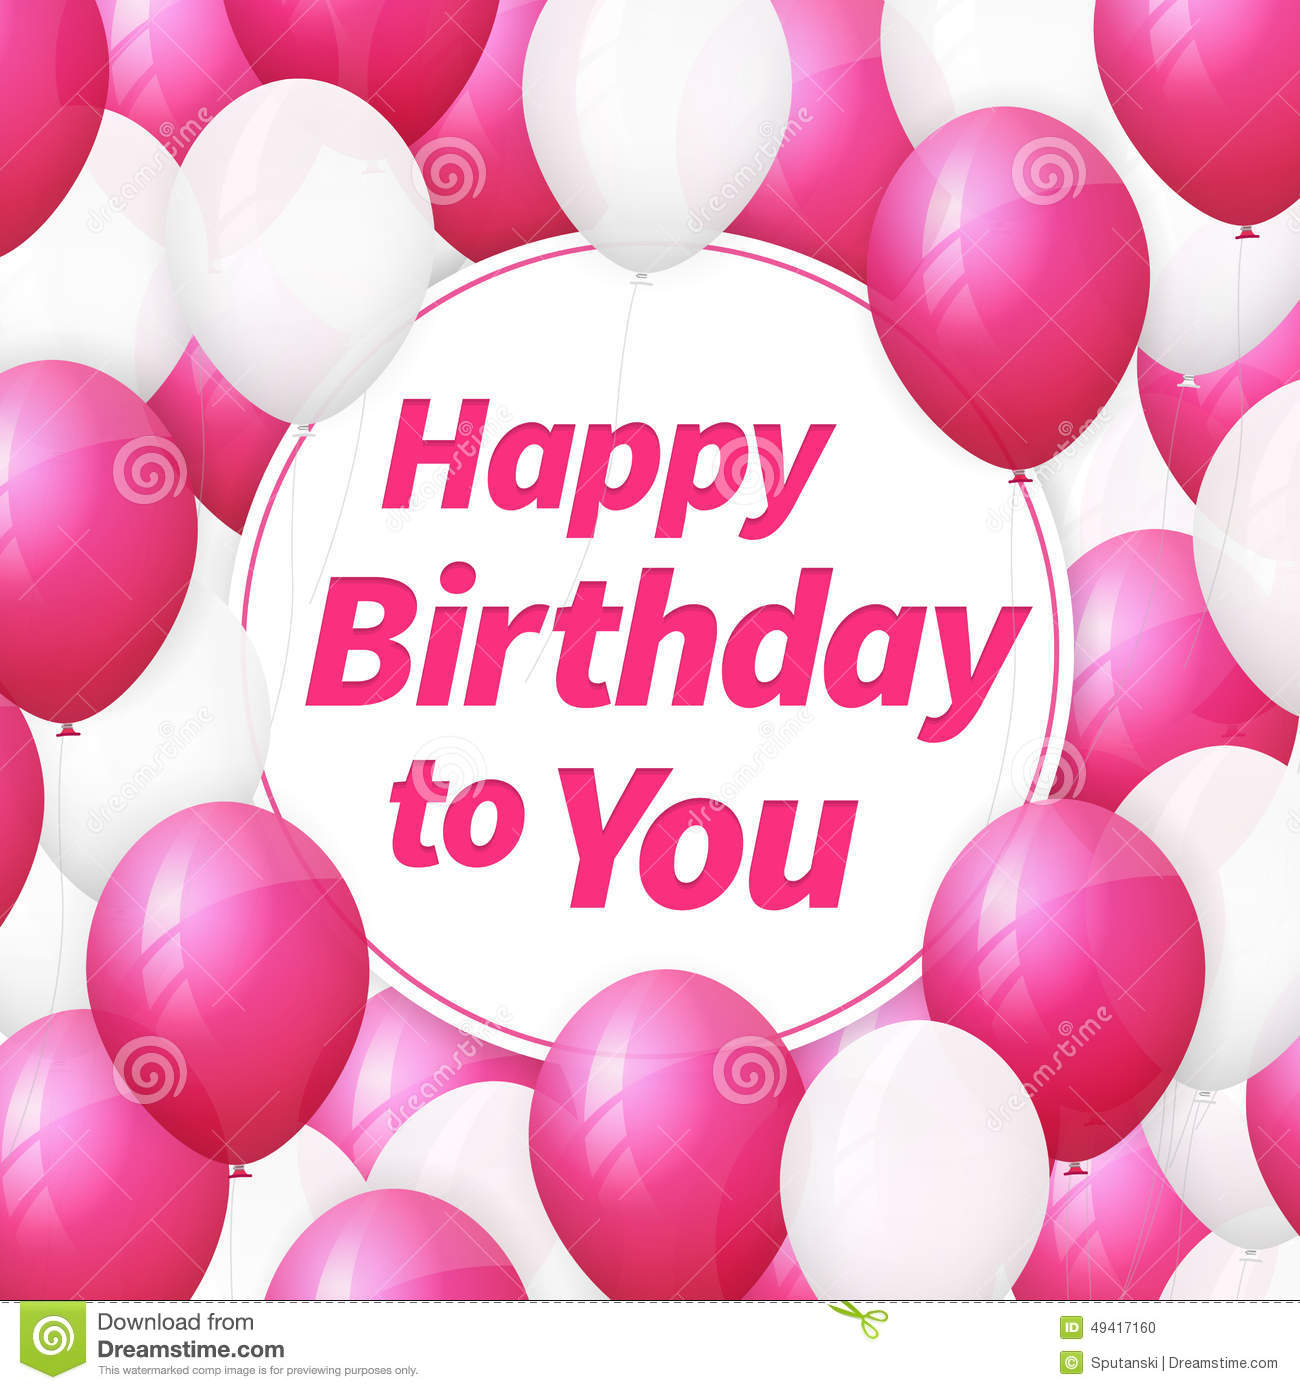 Happy Birthday Greeting Card Background With White And Pink Balloons